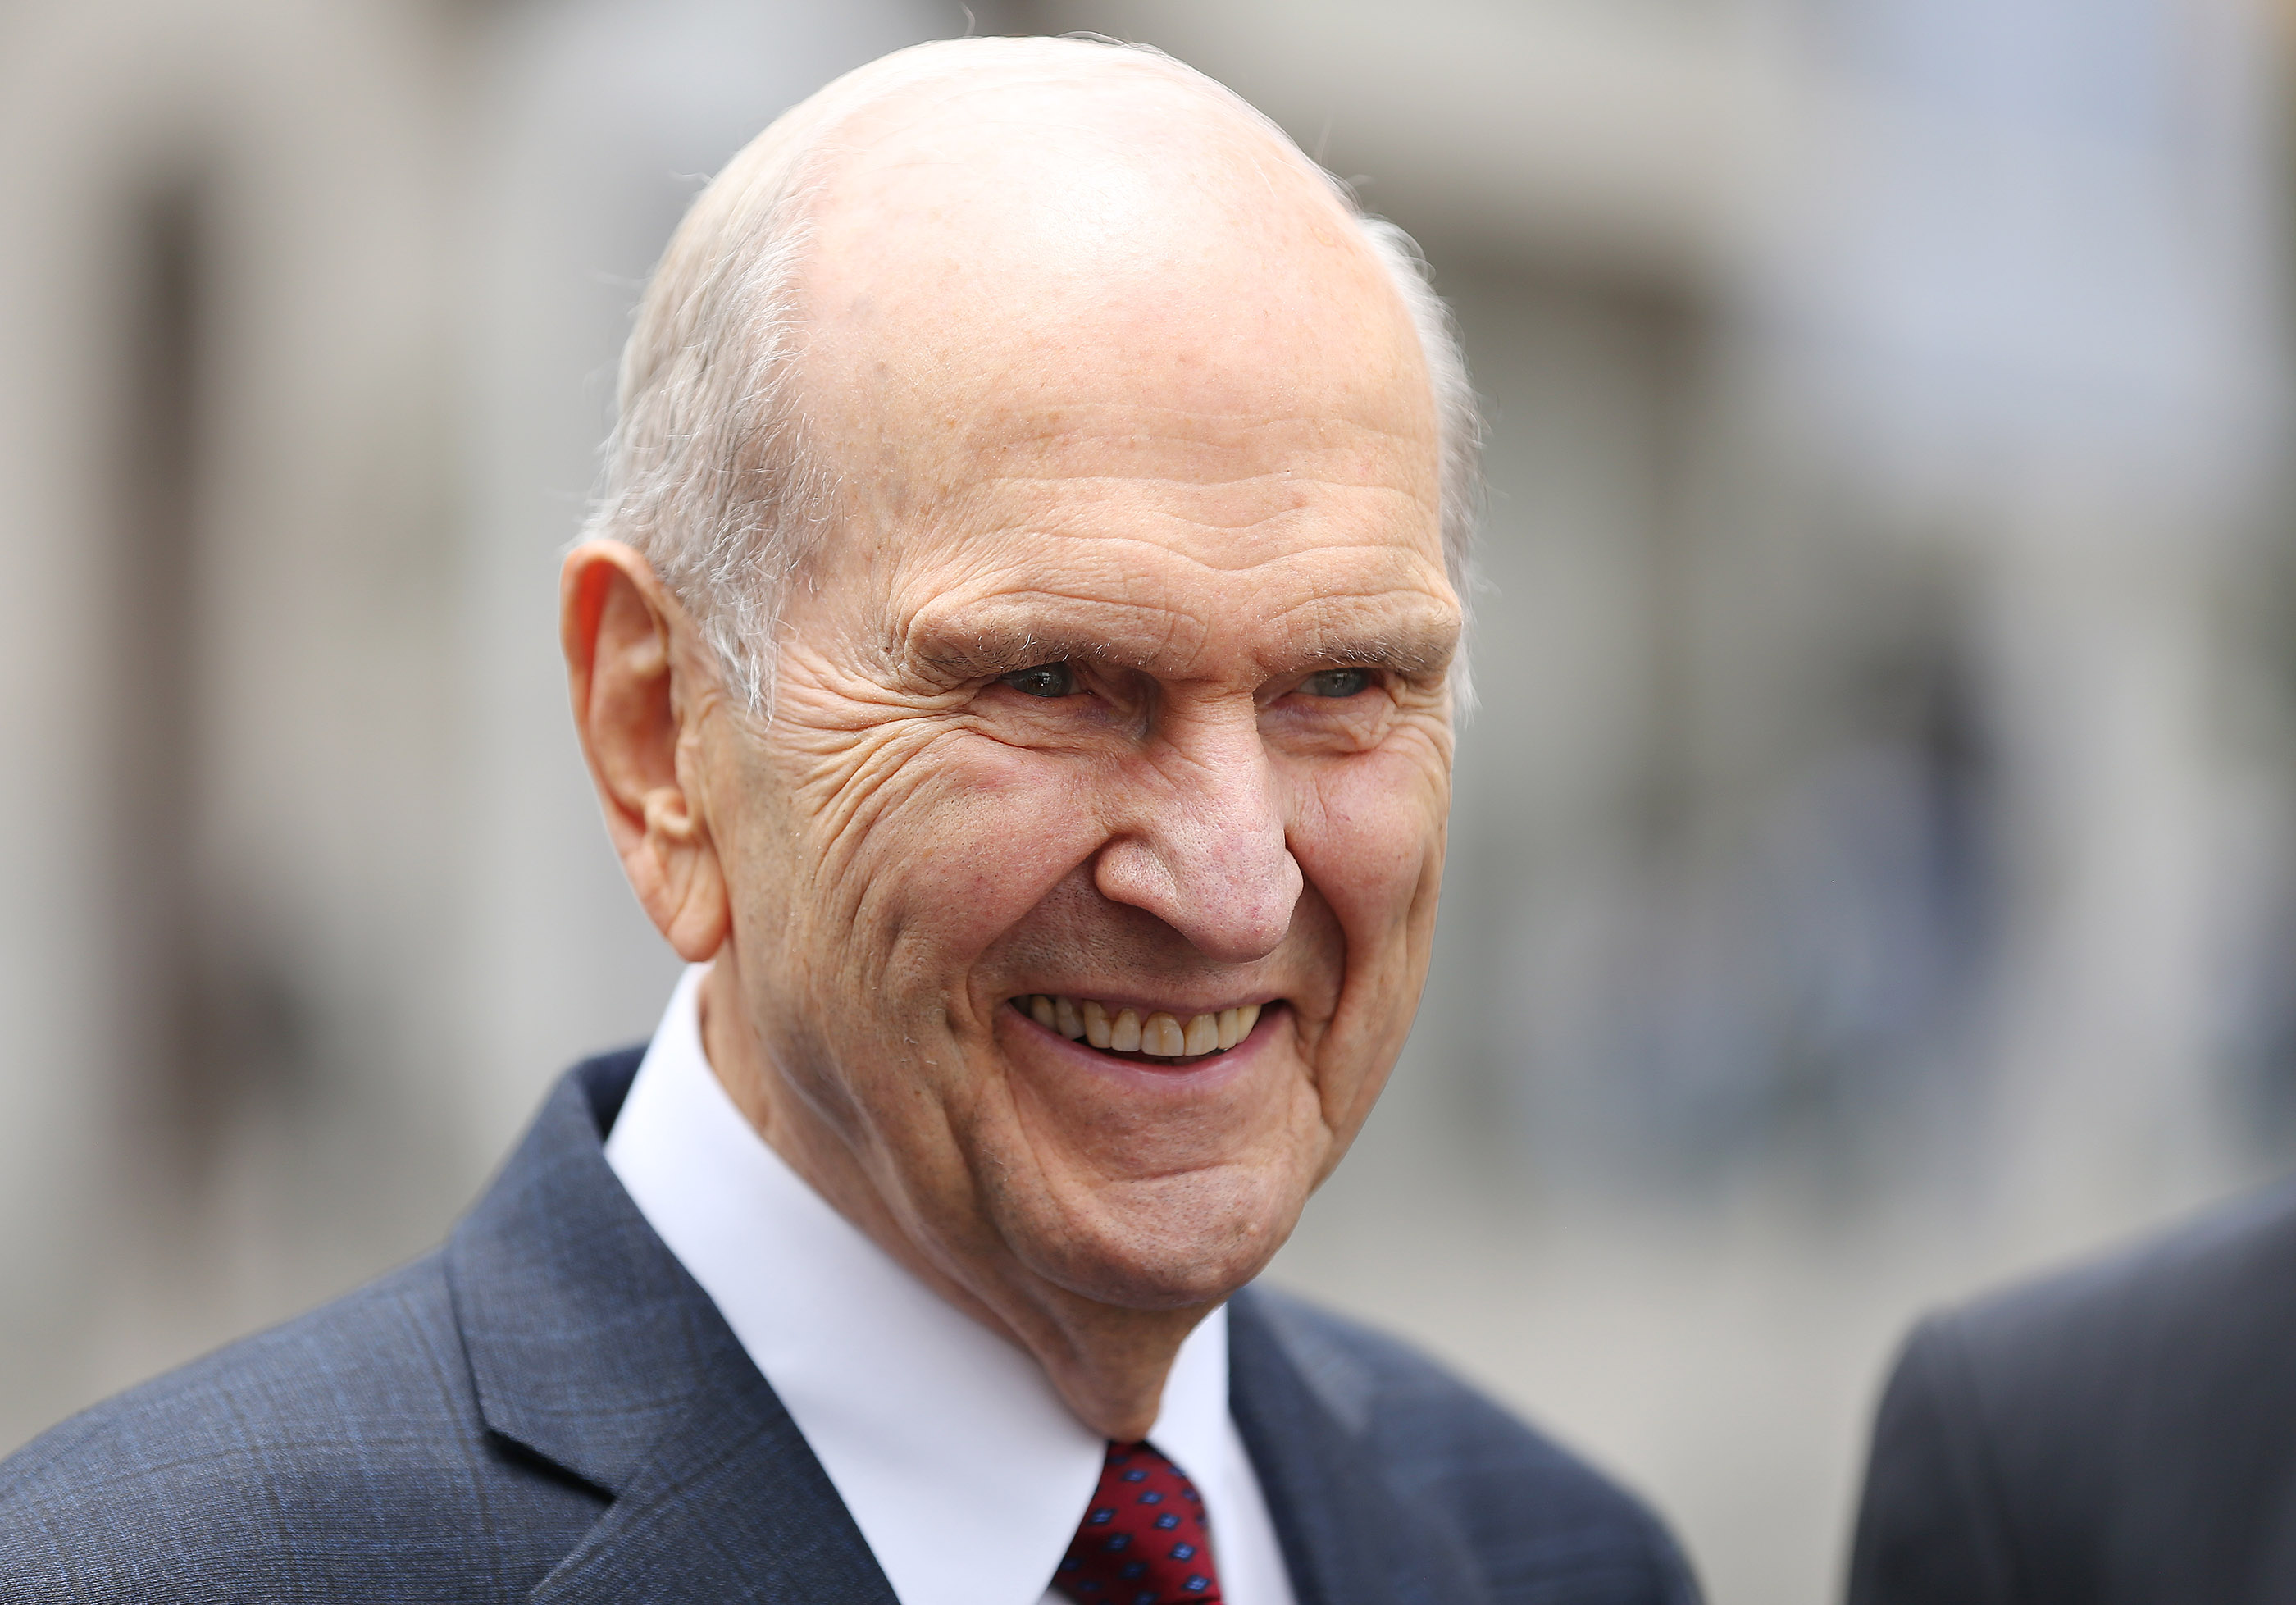 President Russell M. Nelson of The Church of Jesus Christ of Latter-day Saints smiles after leaving the Government Palace after speaking with the president of Peru in Lima, Peru on Oct. 20, 2018.